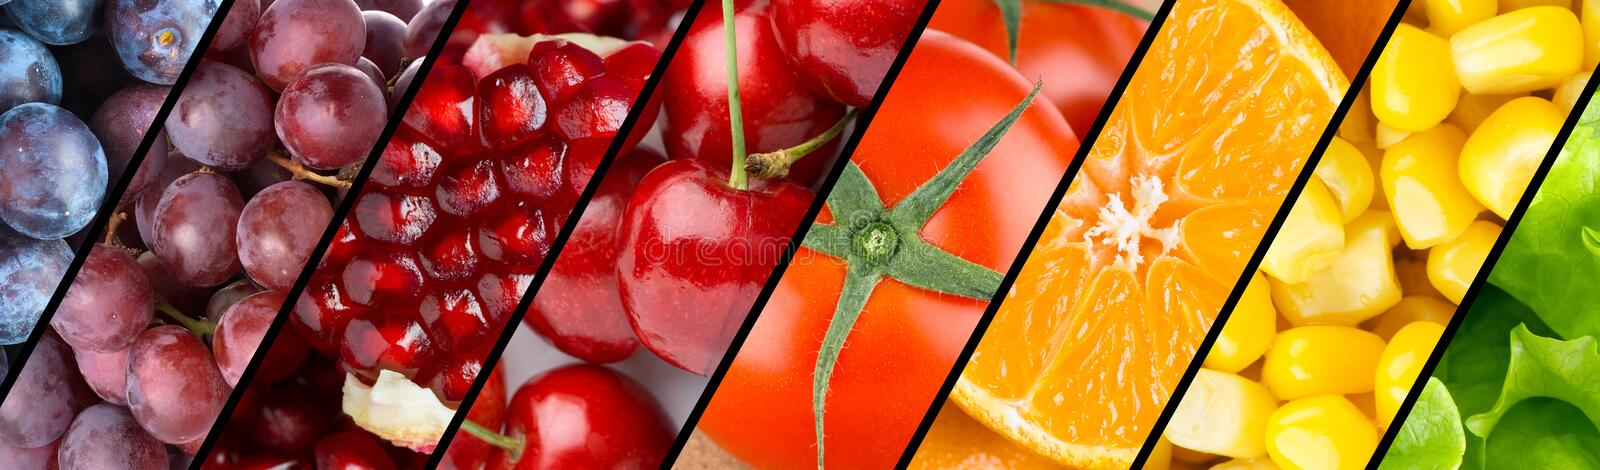 Collection with different fruits, berries and vegetables royalty free stock image